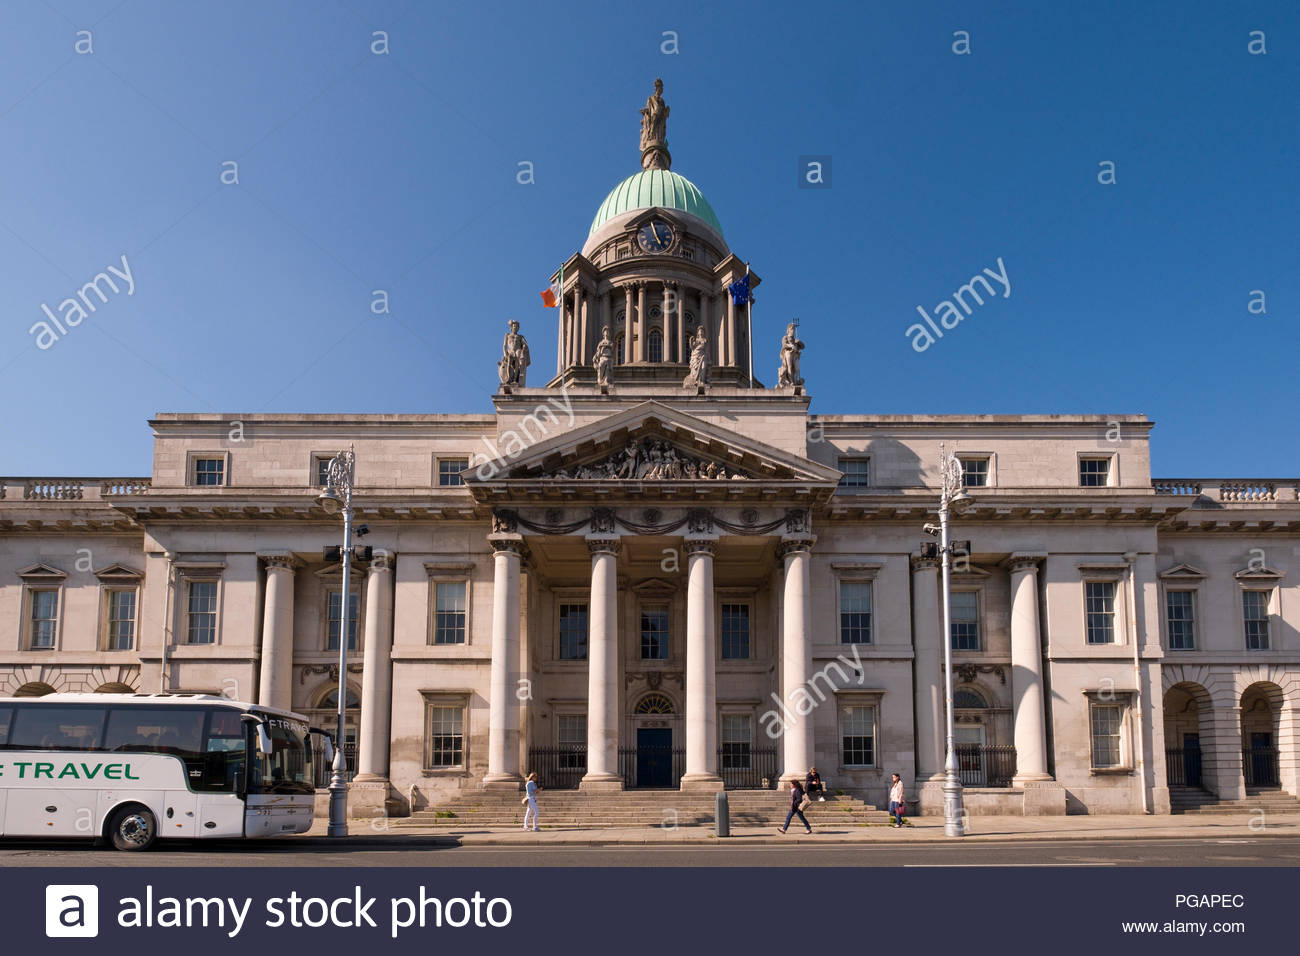 The Custom House, a masterpiece of European neo-classicism architecture, North Dock, Dublin, Leinster, Ireland - Stock Image